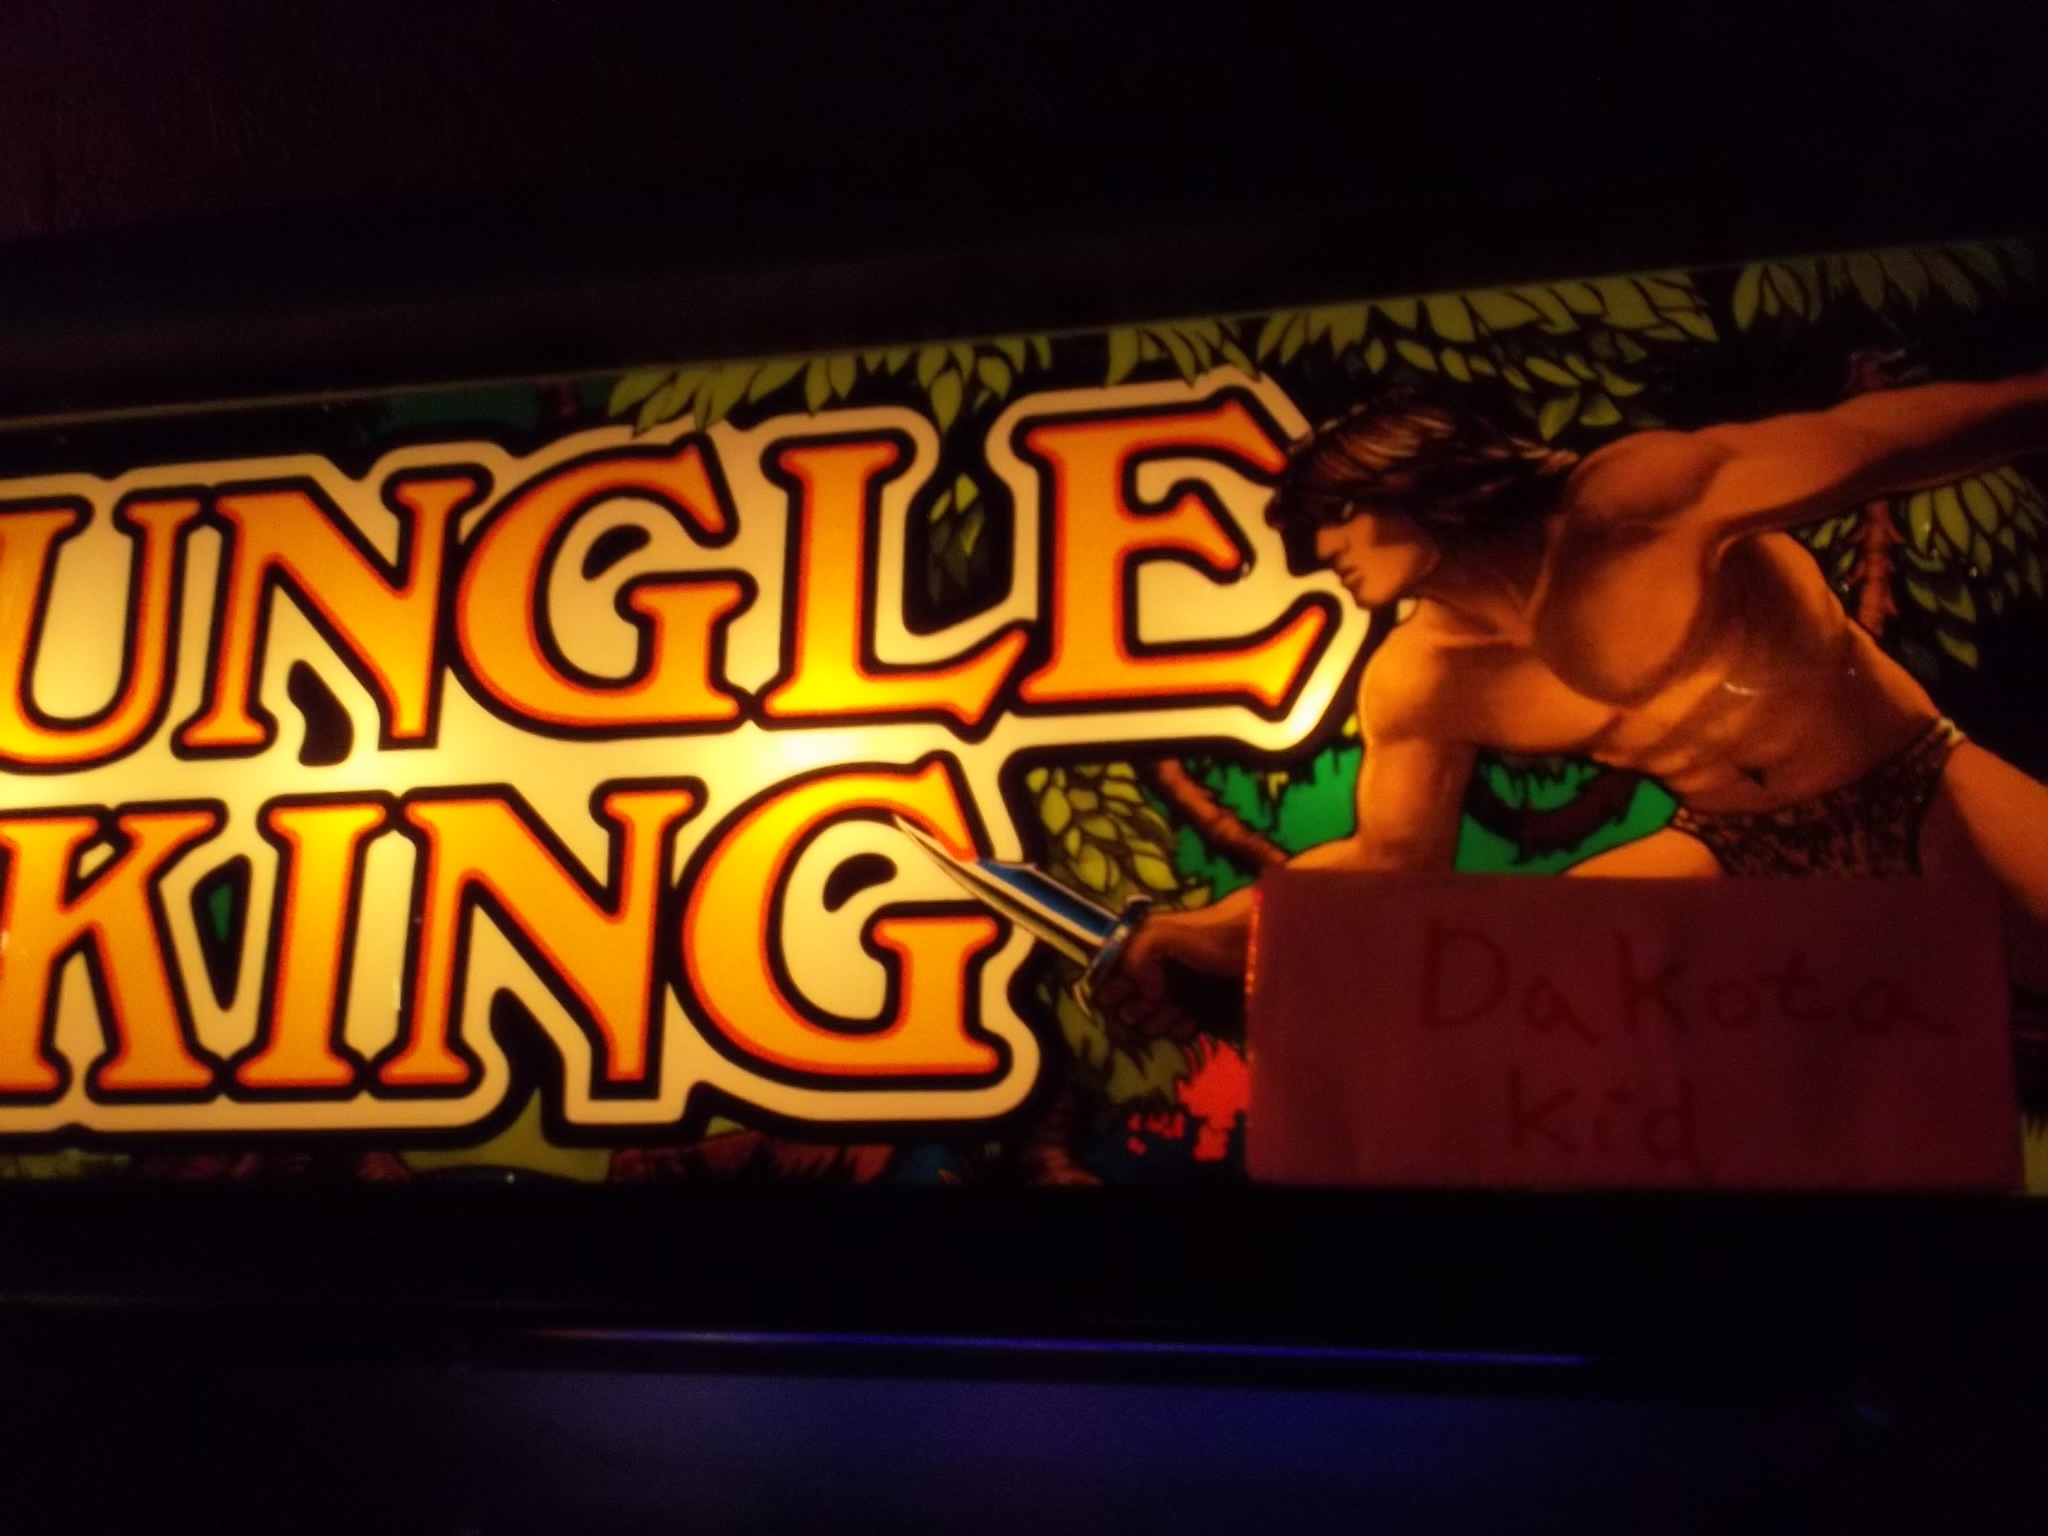 Jungle King 7,600 points